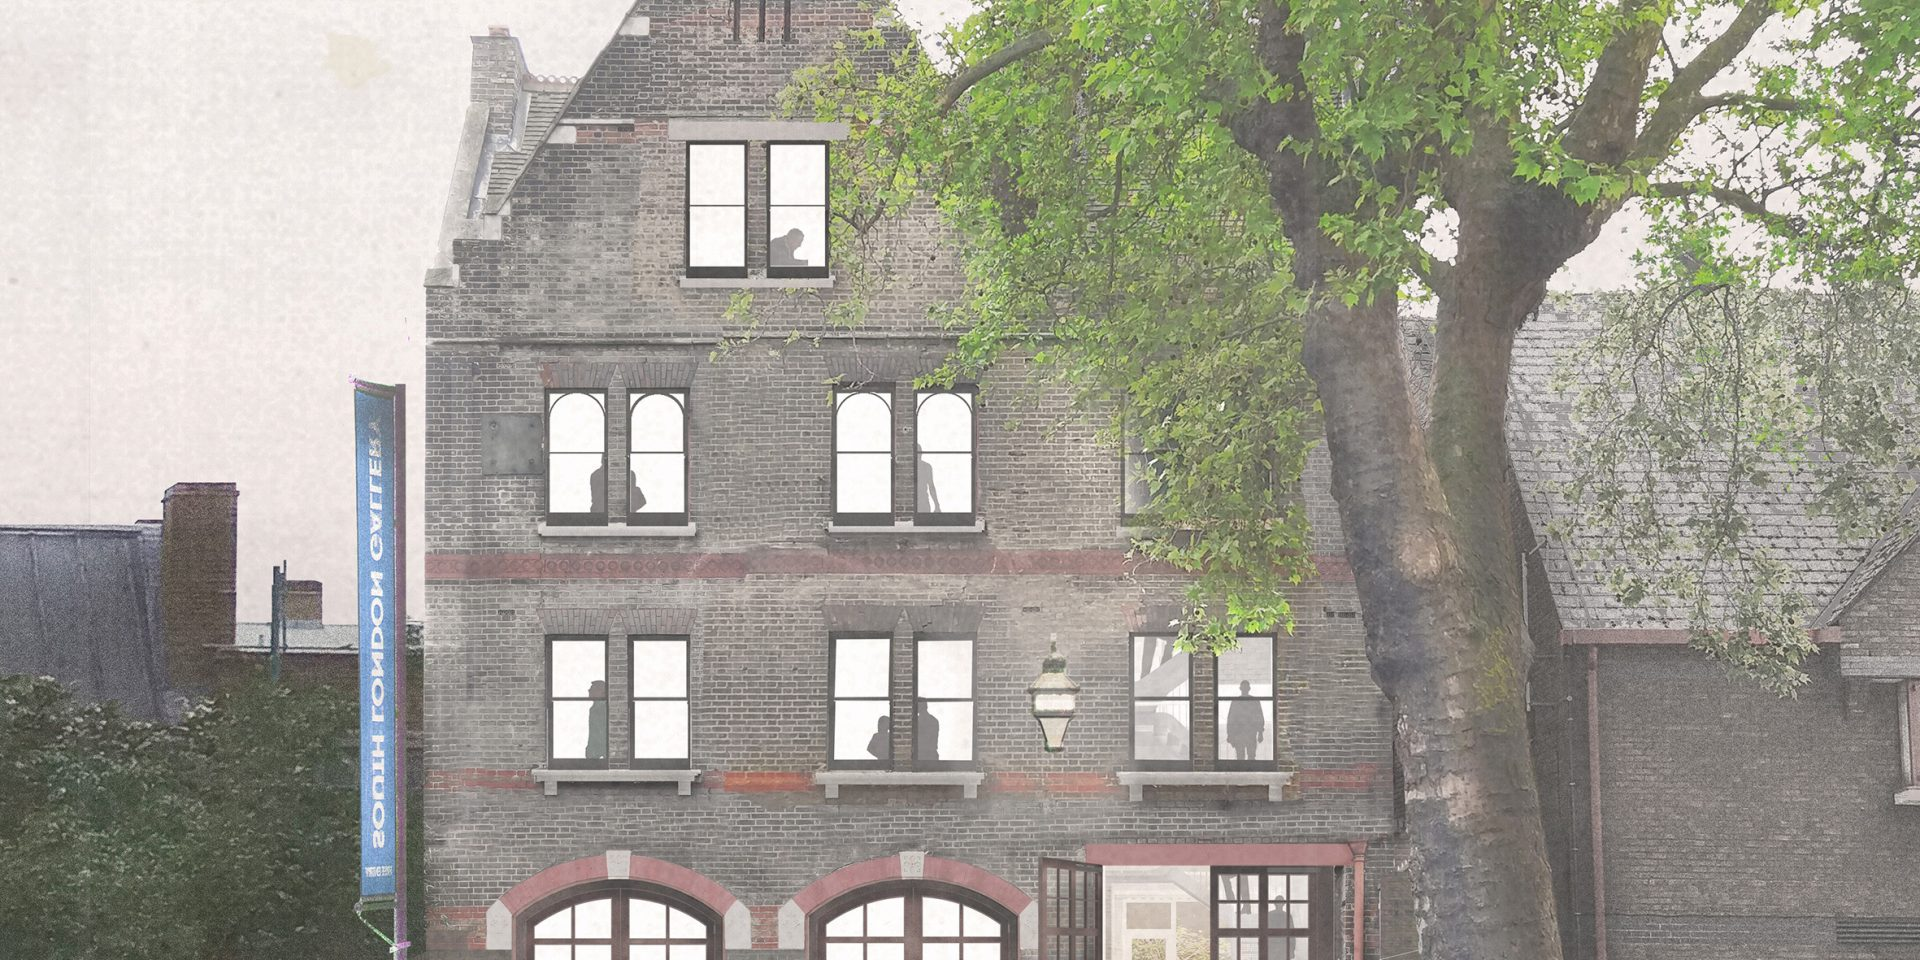 Visualisation of the Former Peckham Road Fire Station